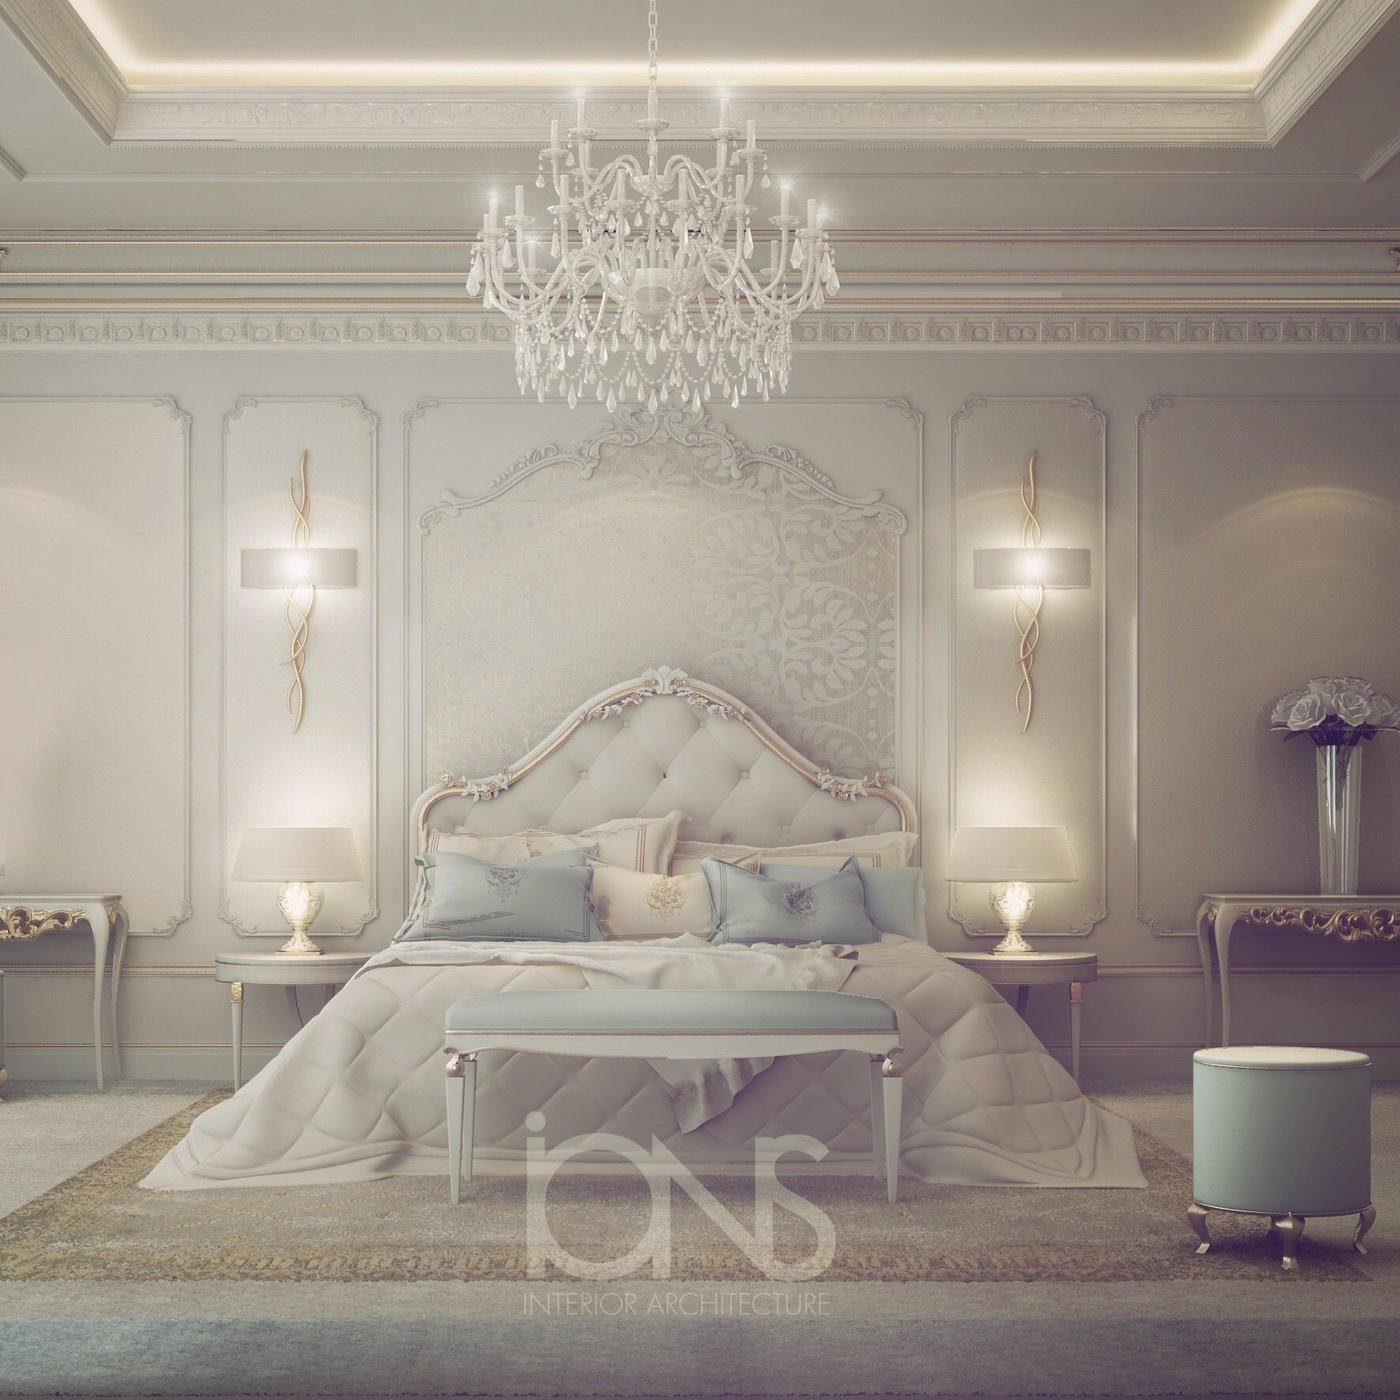 Fresh And Dreamy Bedroom Design By Ions Design At Coroflot.com